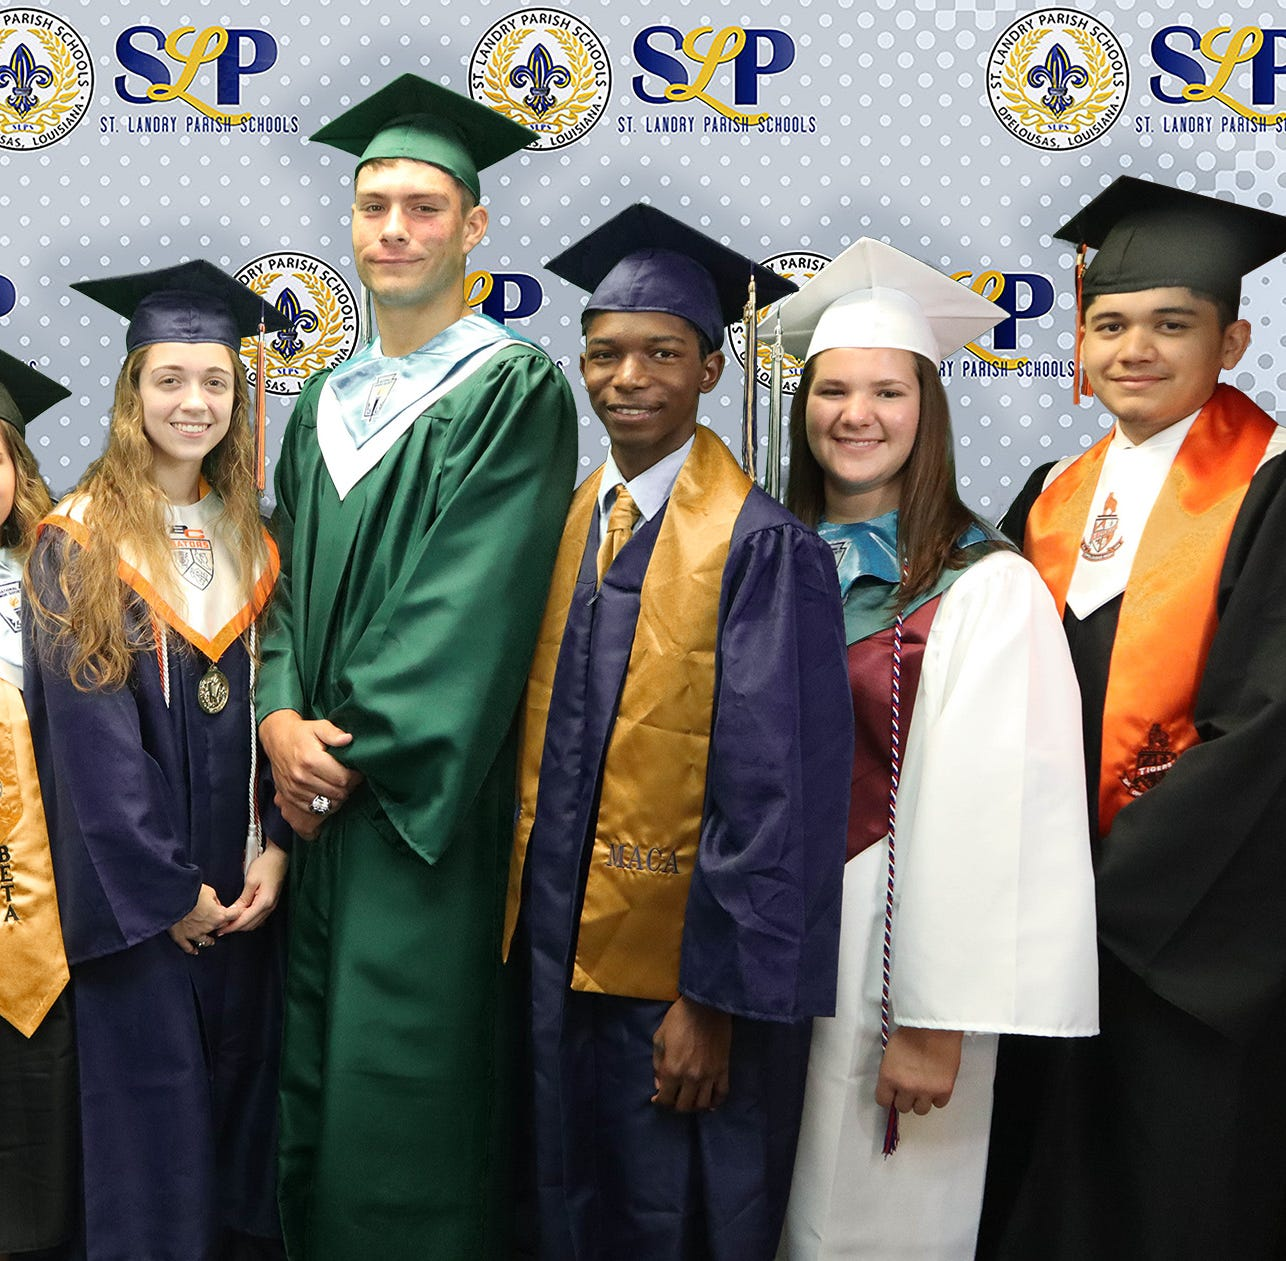 Meet the St. Landry Parish Class of 2019 valedictorians